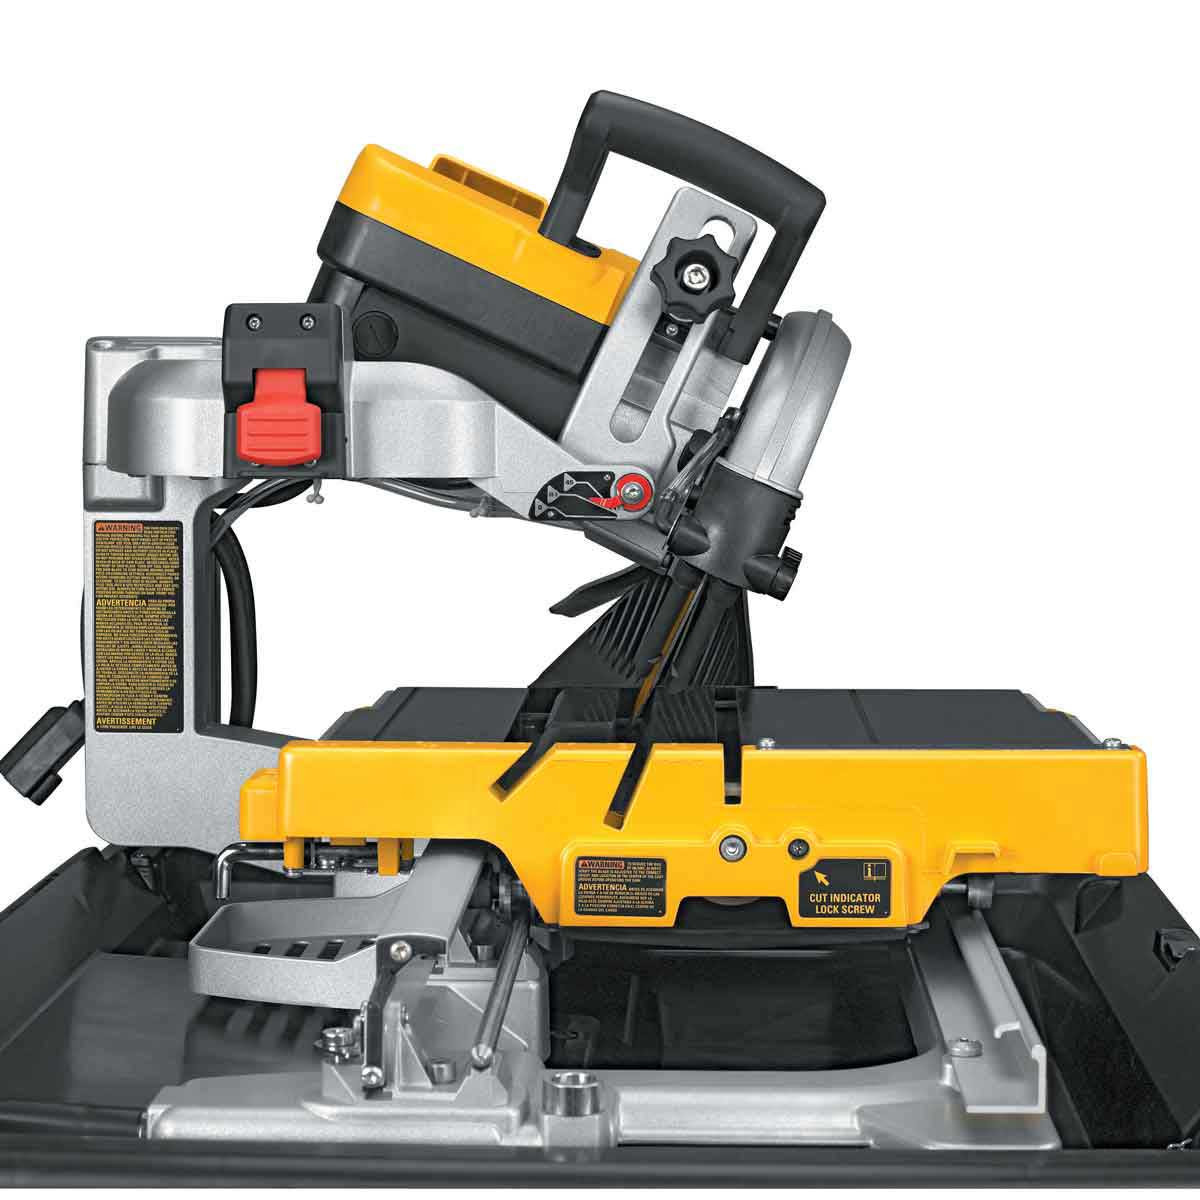 dewalt tile saw 22.5 miter cut